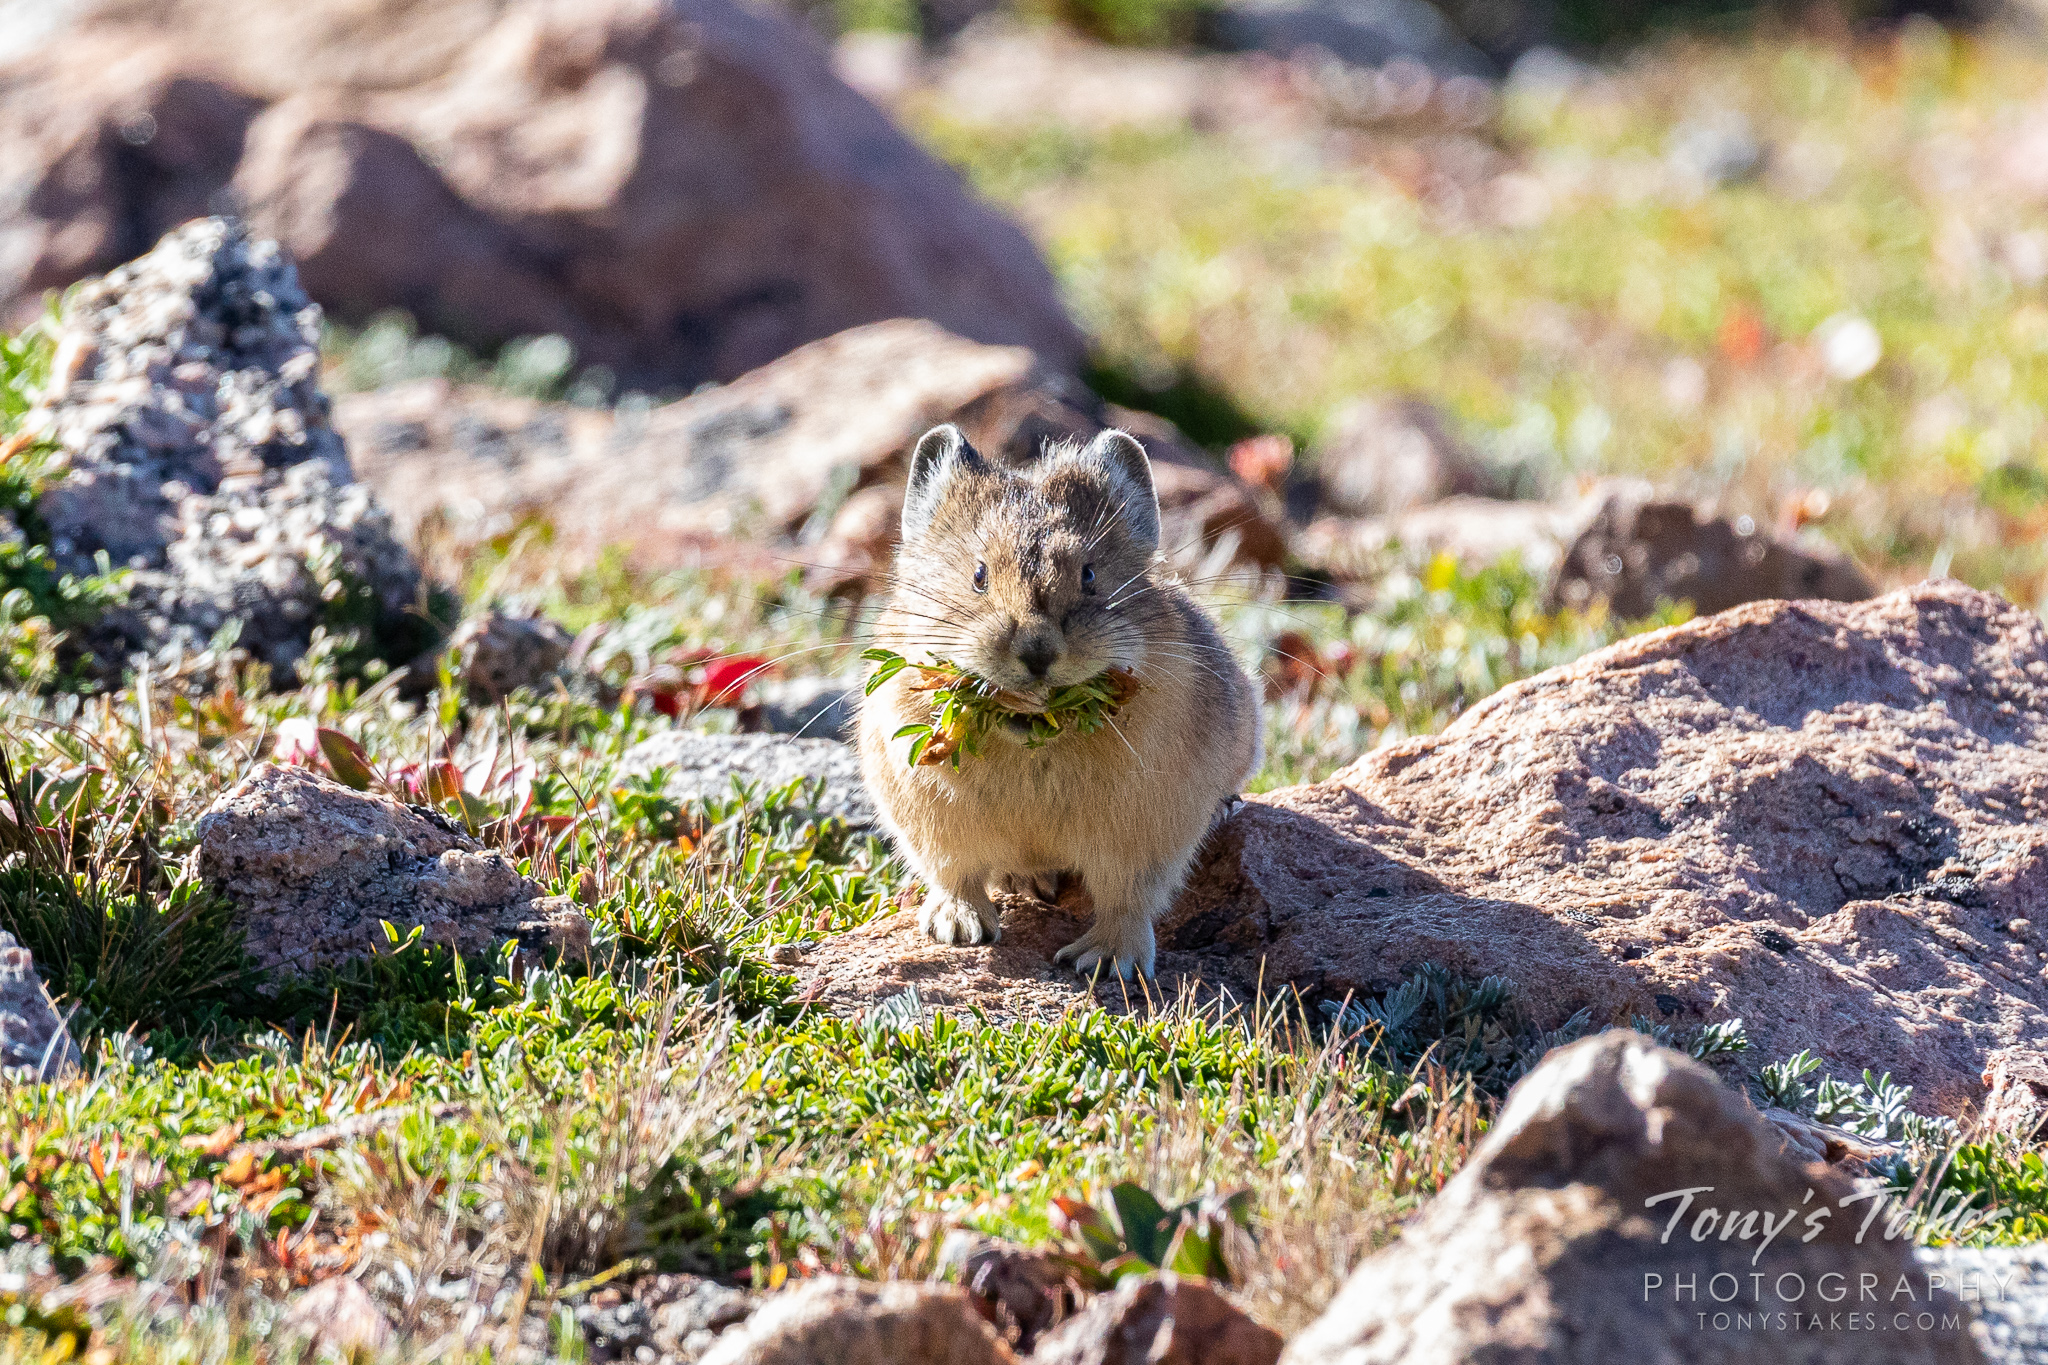 An American pika gathers a mouthful of food on Mount Evans, Colorado. (© Tony's Takes)